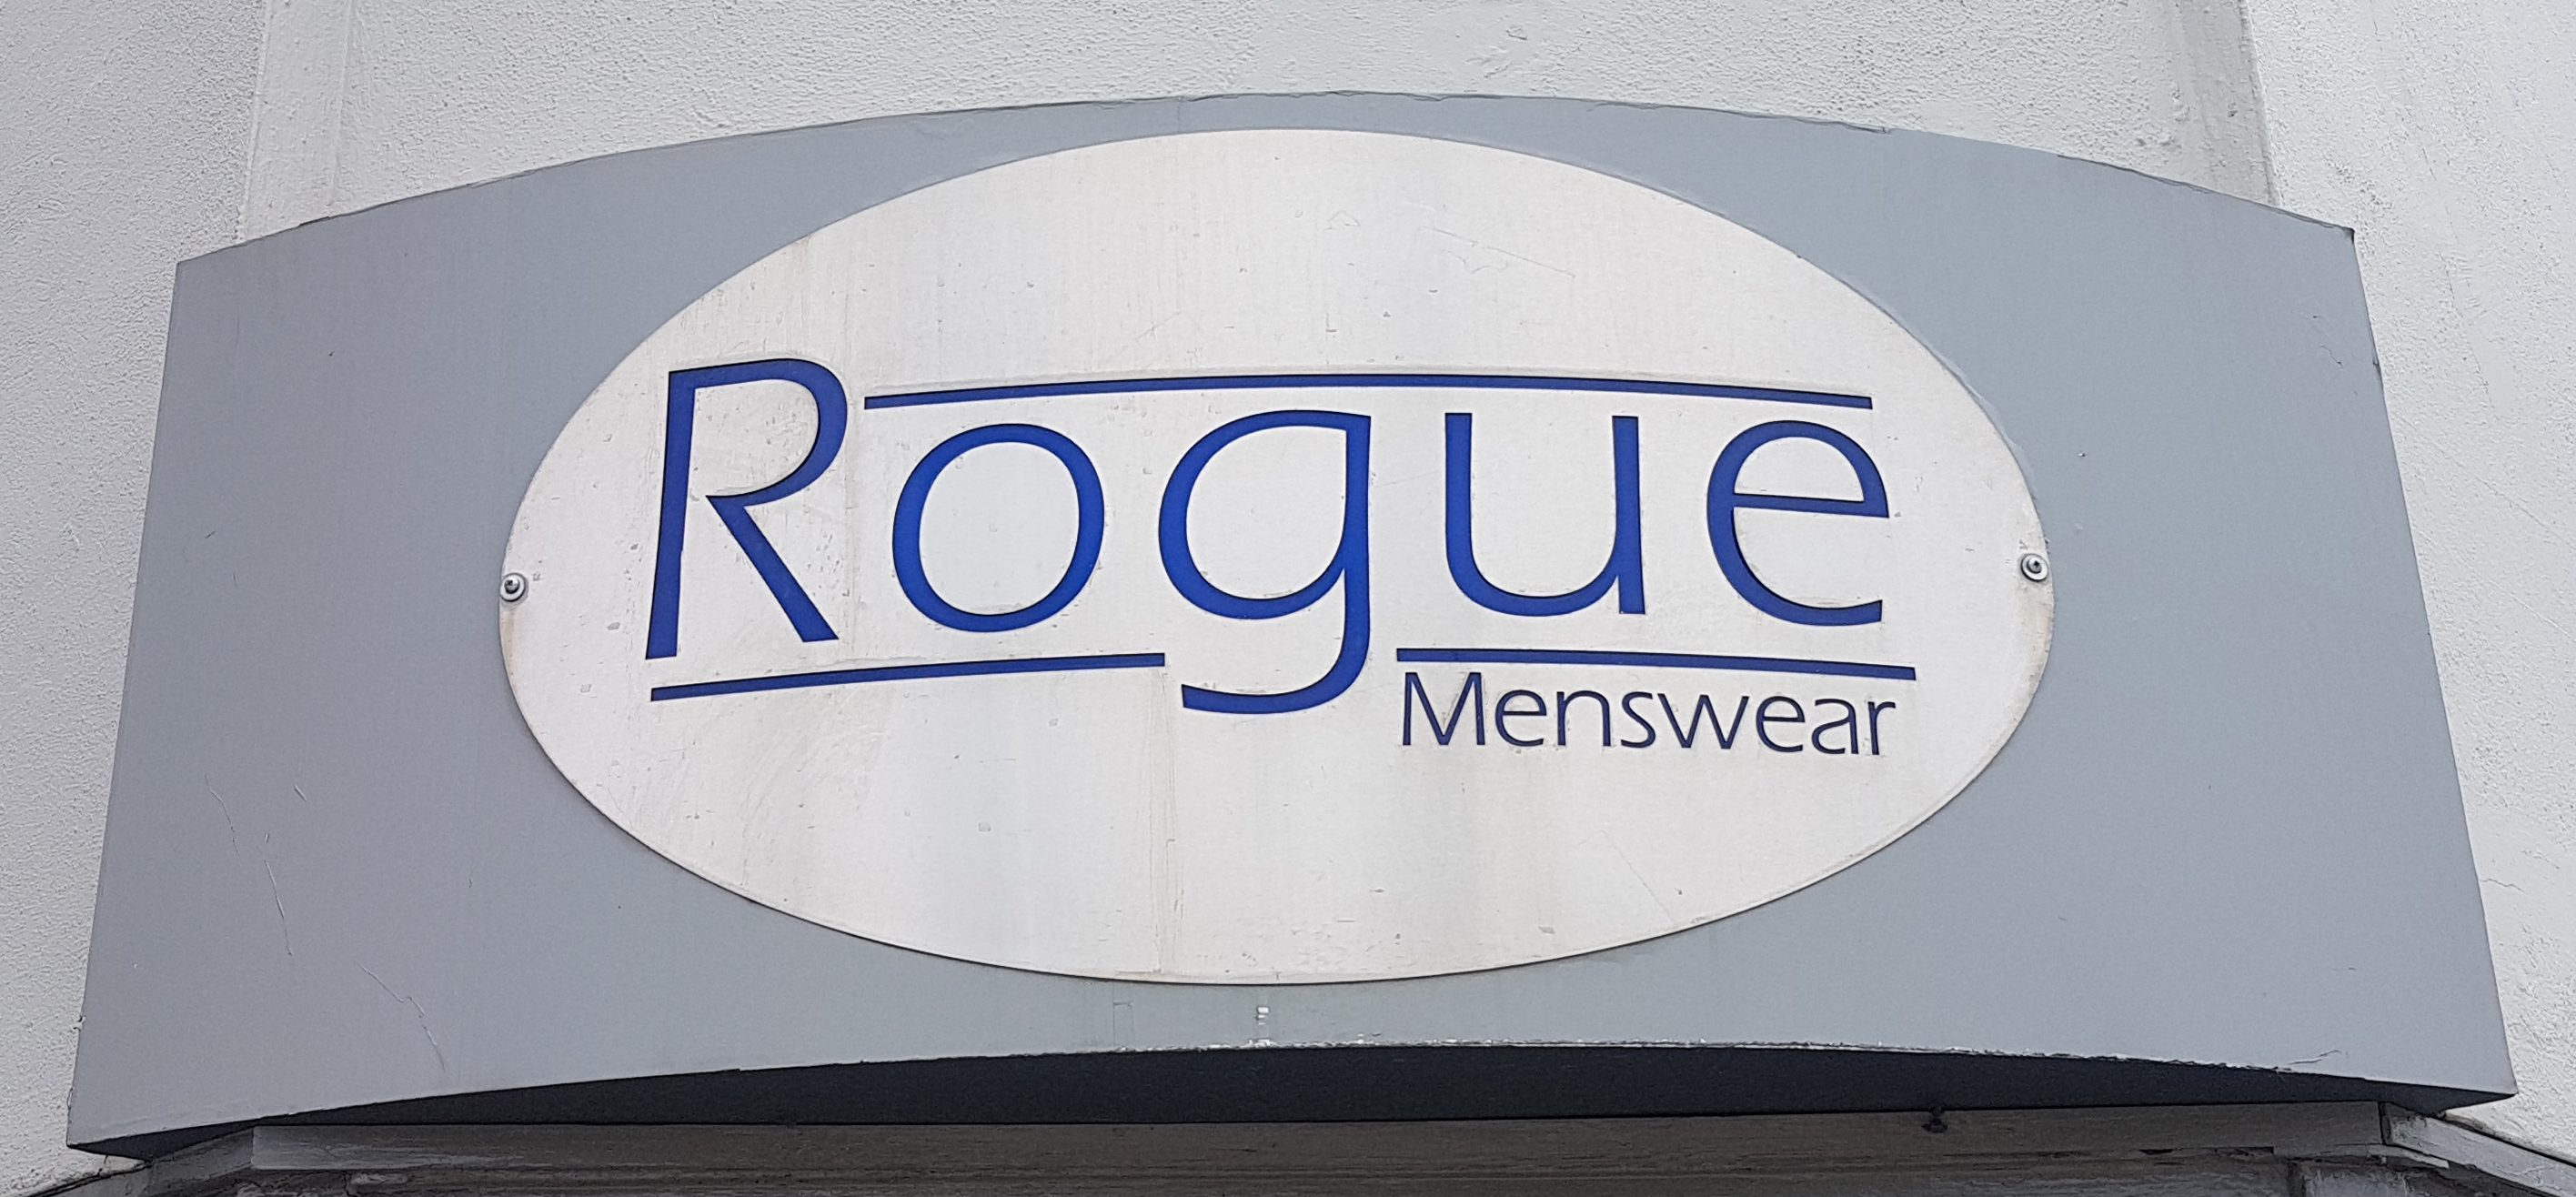 http://www.roguemenswear.co.uk/wp-content/uploads/2019/07/20190722_130554-1-e1564063070250.jpg